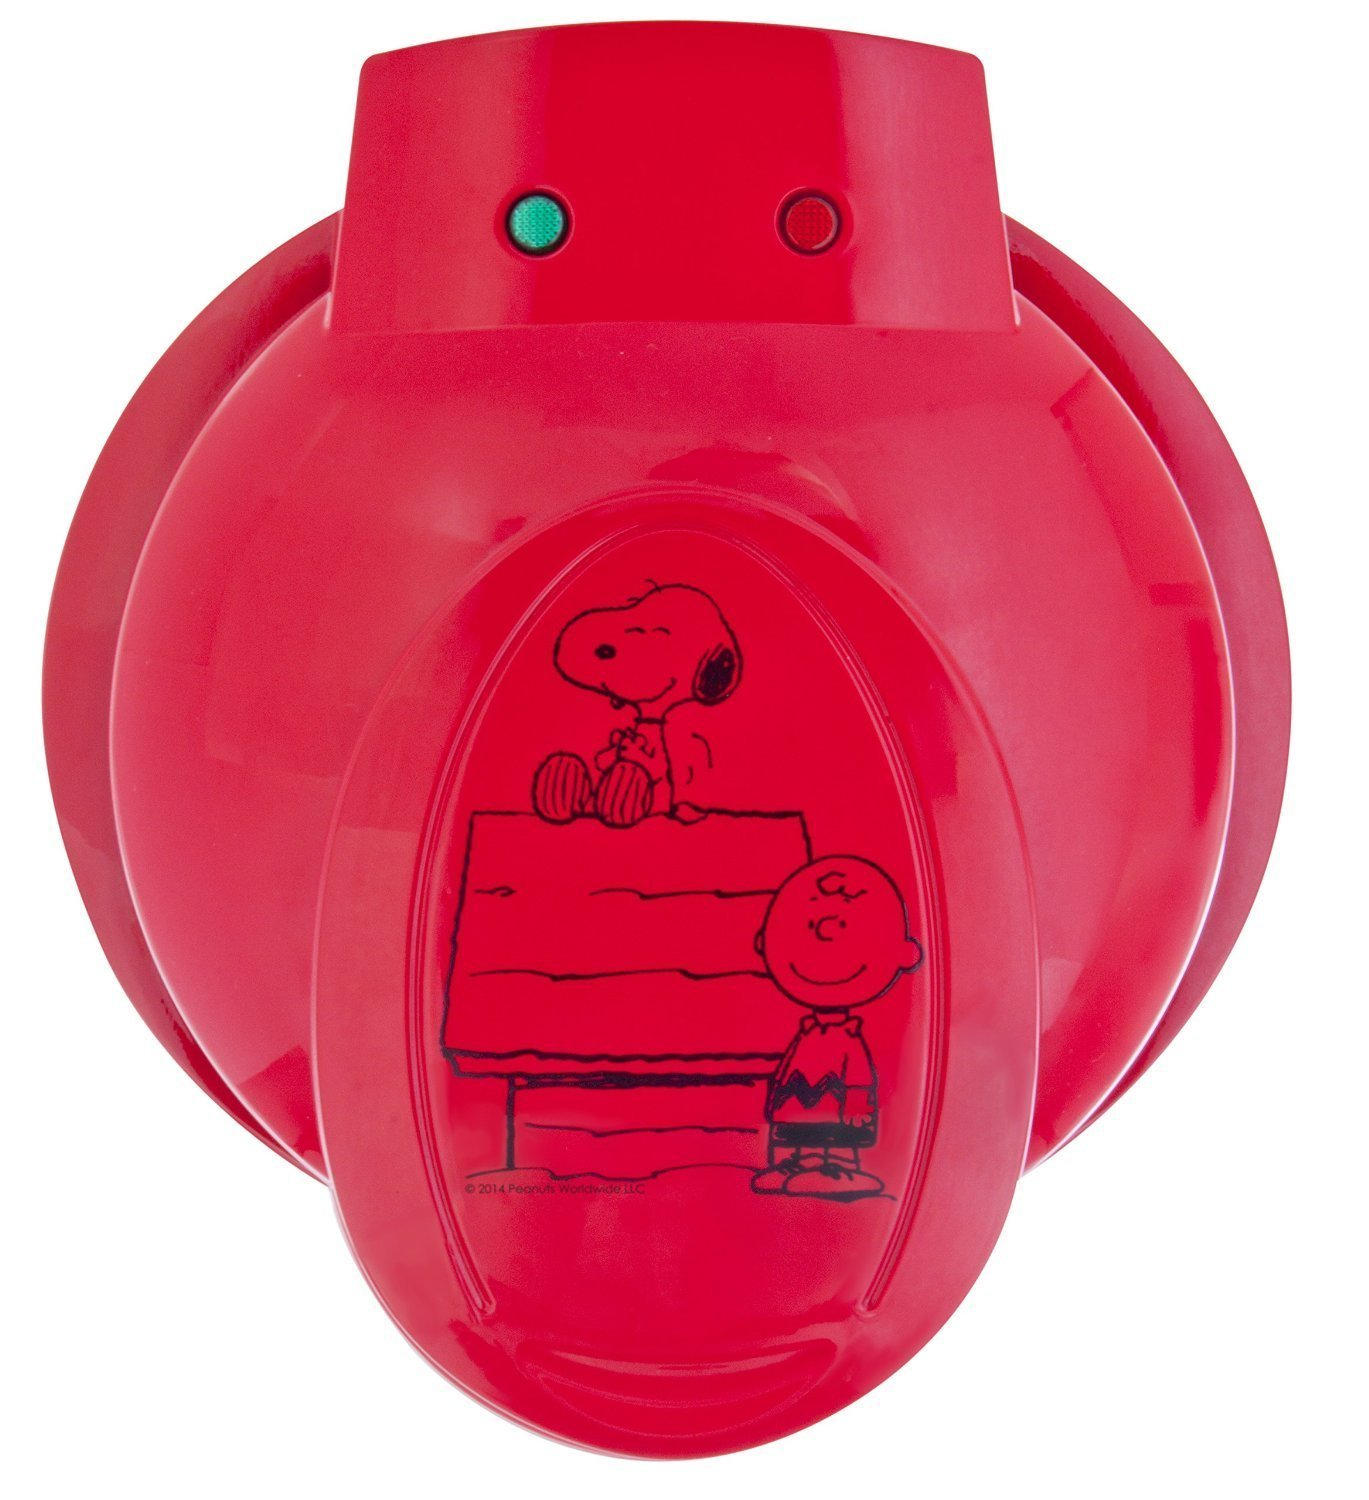 Smart Planet WM‐6S Peanuts Snoopy and Charlie Brown Waffle Maker, Red WM-6S